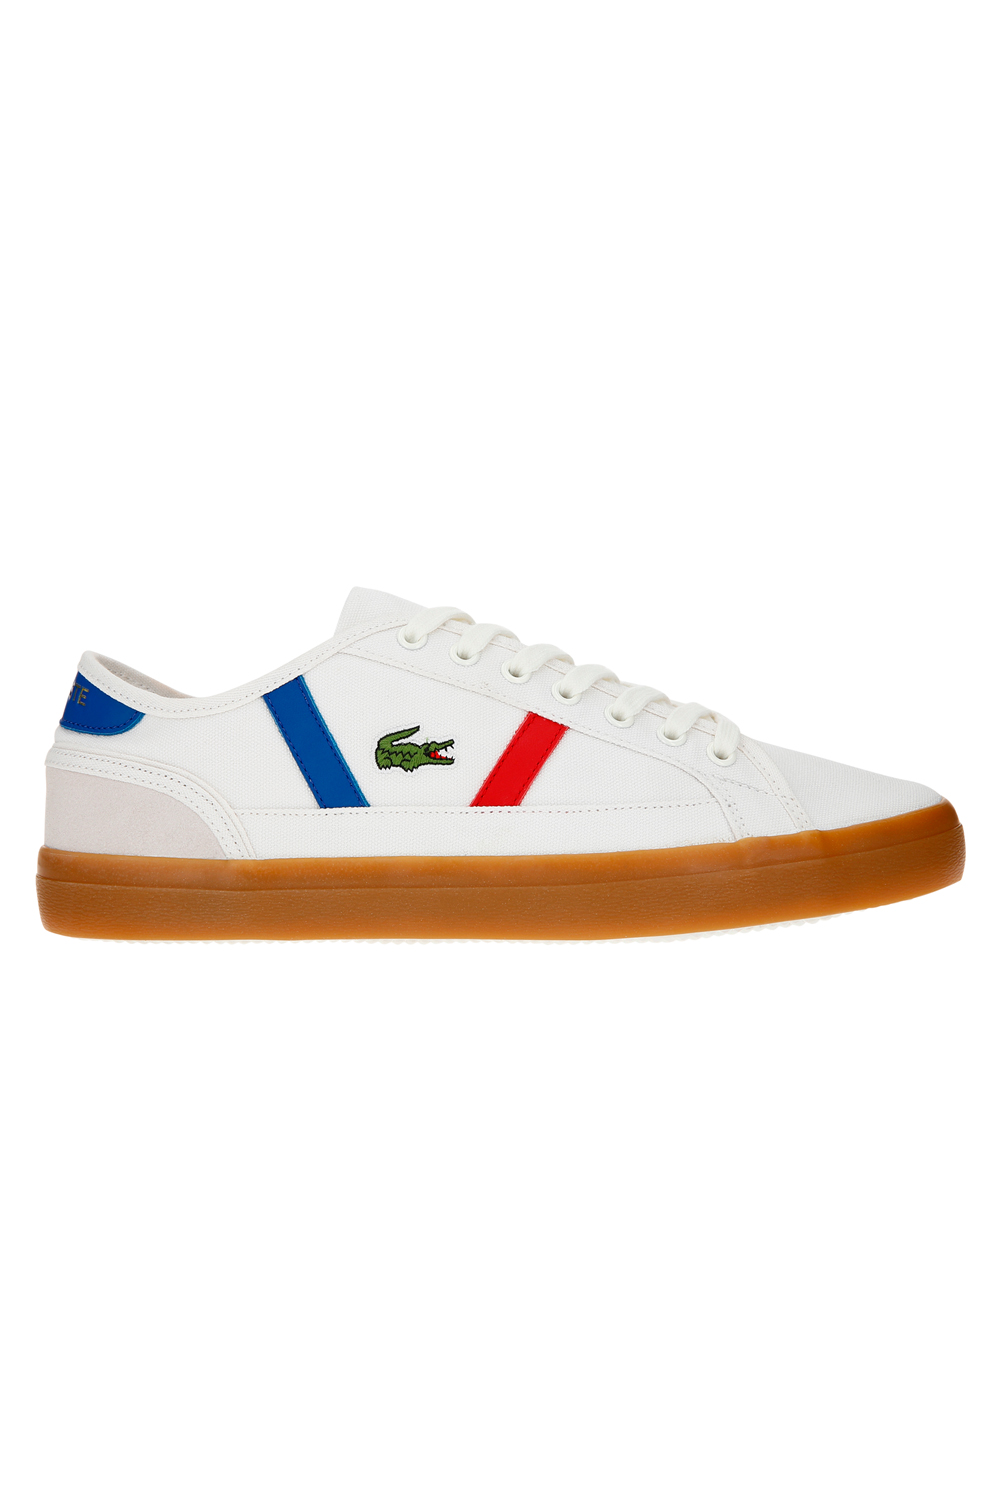 Lacoste-Mens-Sideline-119-Lace-Ups-Leather-Canvas-White-Trainers-Casual-Shoes thumbnail 3